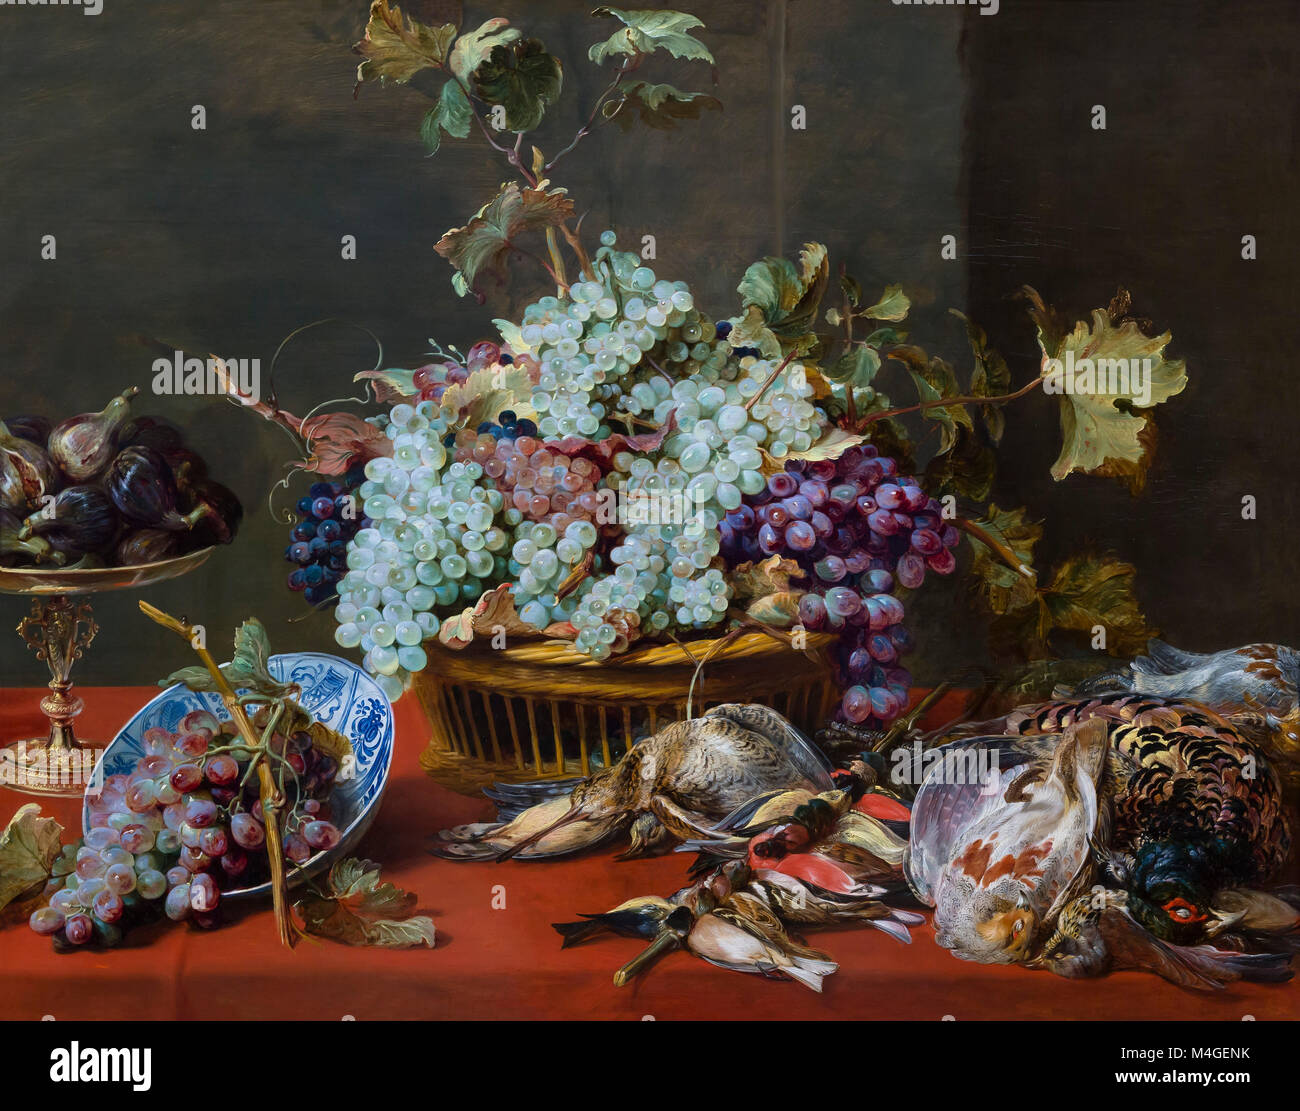 Still Life with Grapes and Game, Frans Snyders, circa 1630, National Gallery of Art, Washington DC, USA, North America - Stock Image